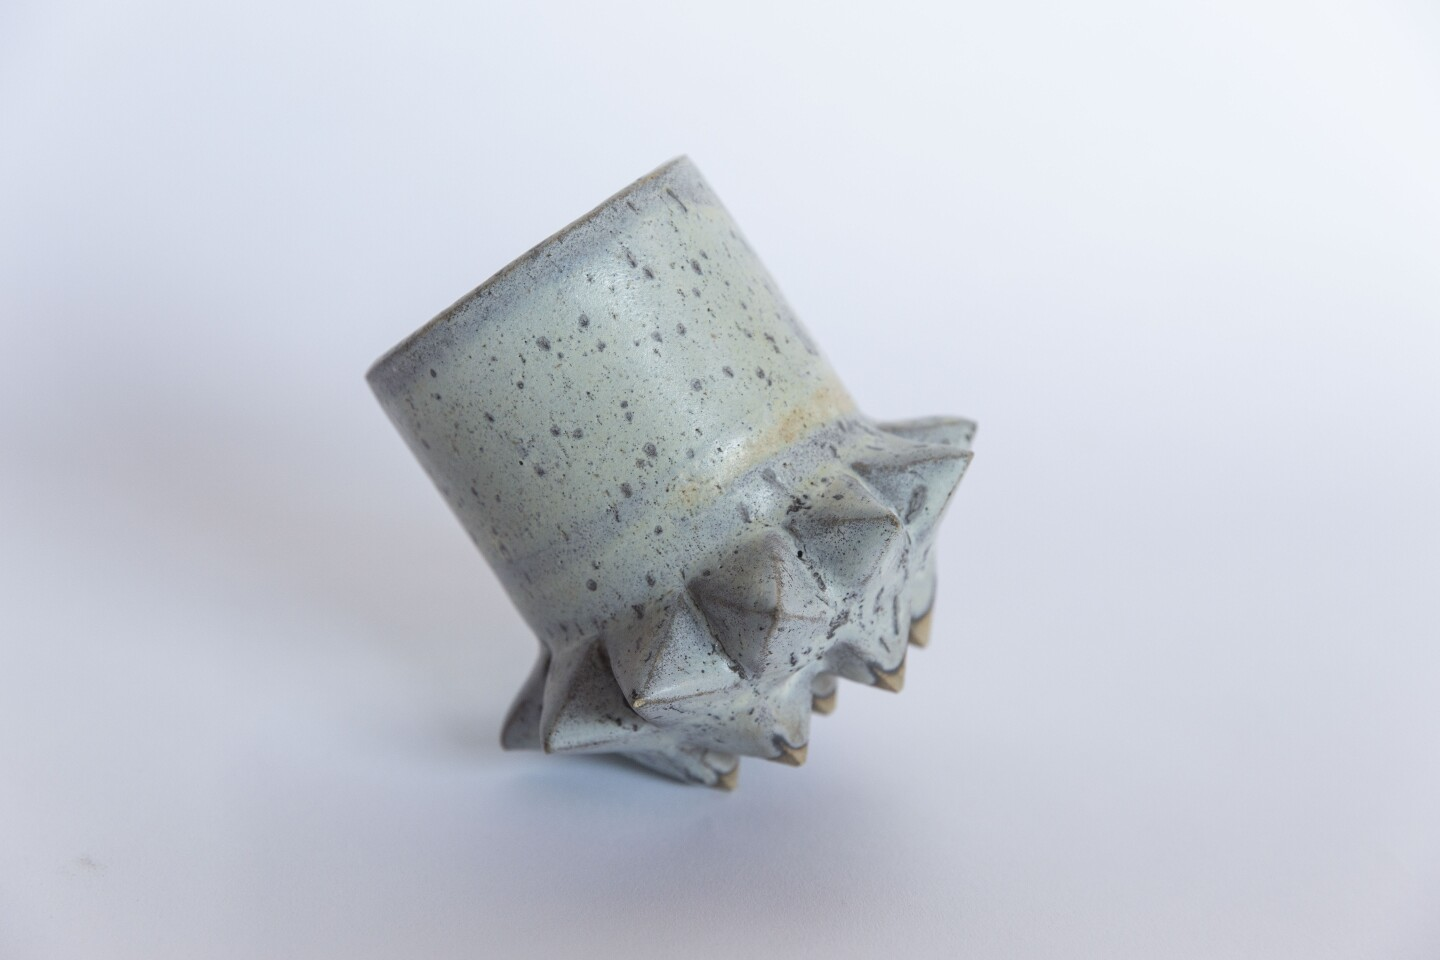 LOS ANGELES, October 31, 2019: Studded mug by LGS Studio. According to the studioÕs website about the collection, each piece is created with brutal, punk tones reflective of our primitive human history that bridges a gap from past to future and underlines the role ceramics have played in human culture.(Allison Zaucha / For The Times)